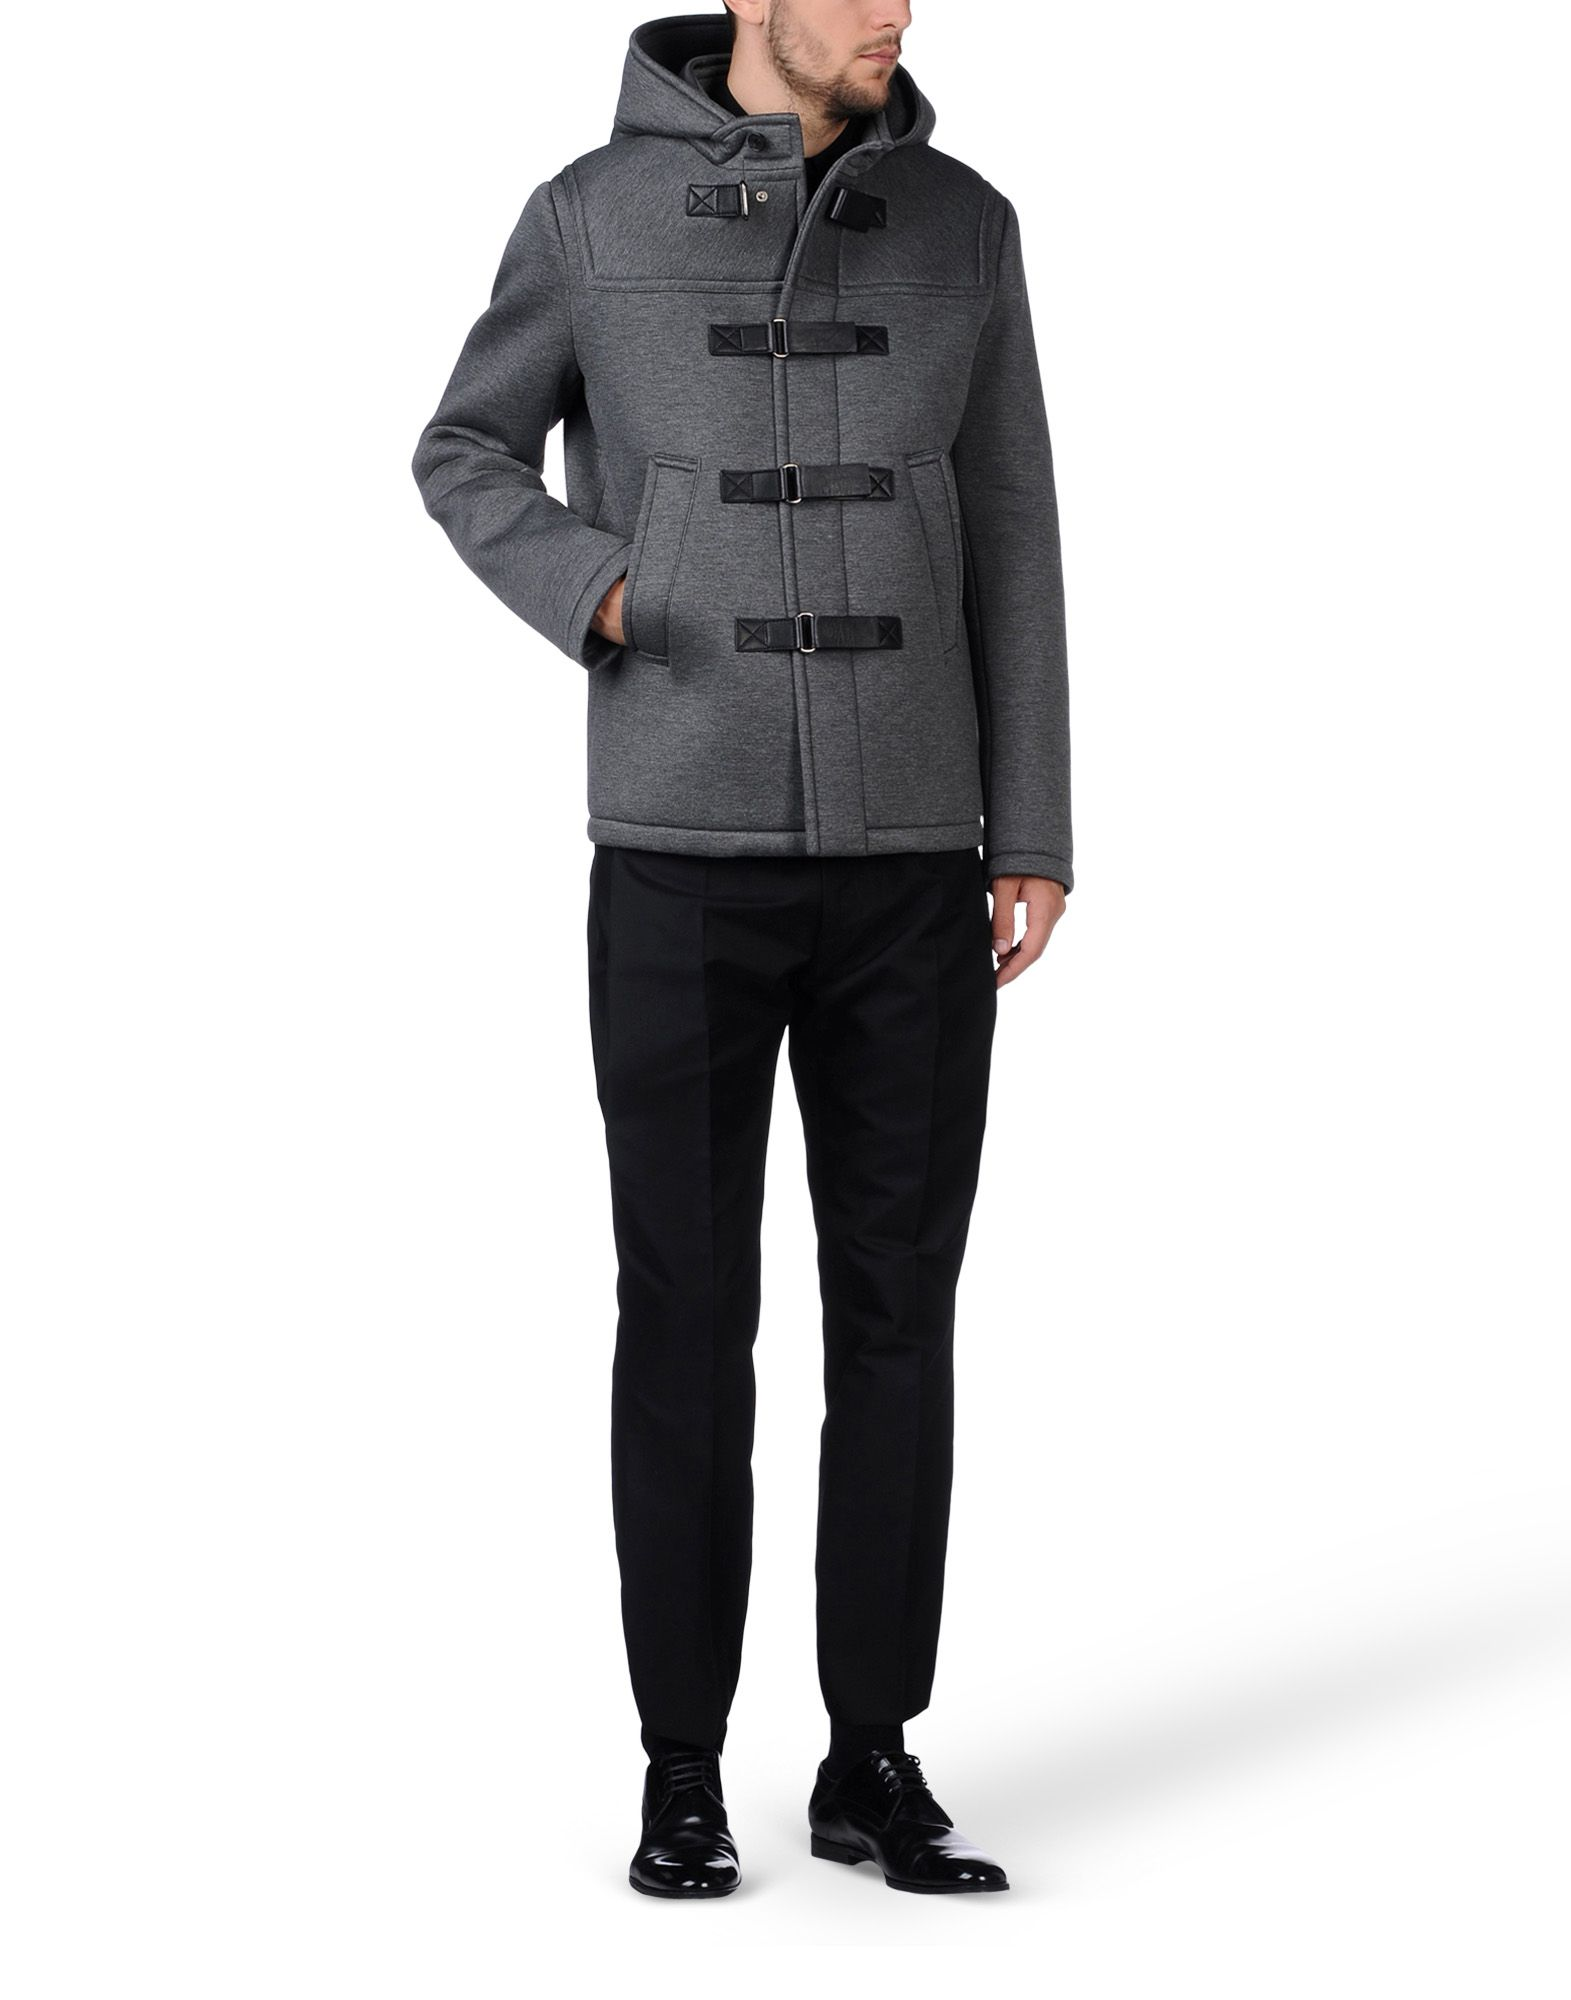 The Corner Sale: Fall/Winter 2014 Now Up to 60% Off